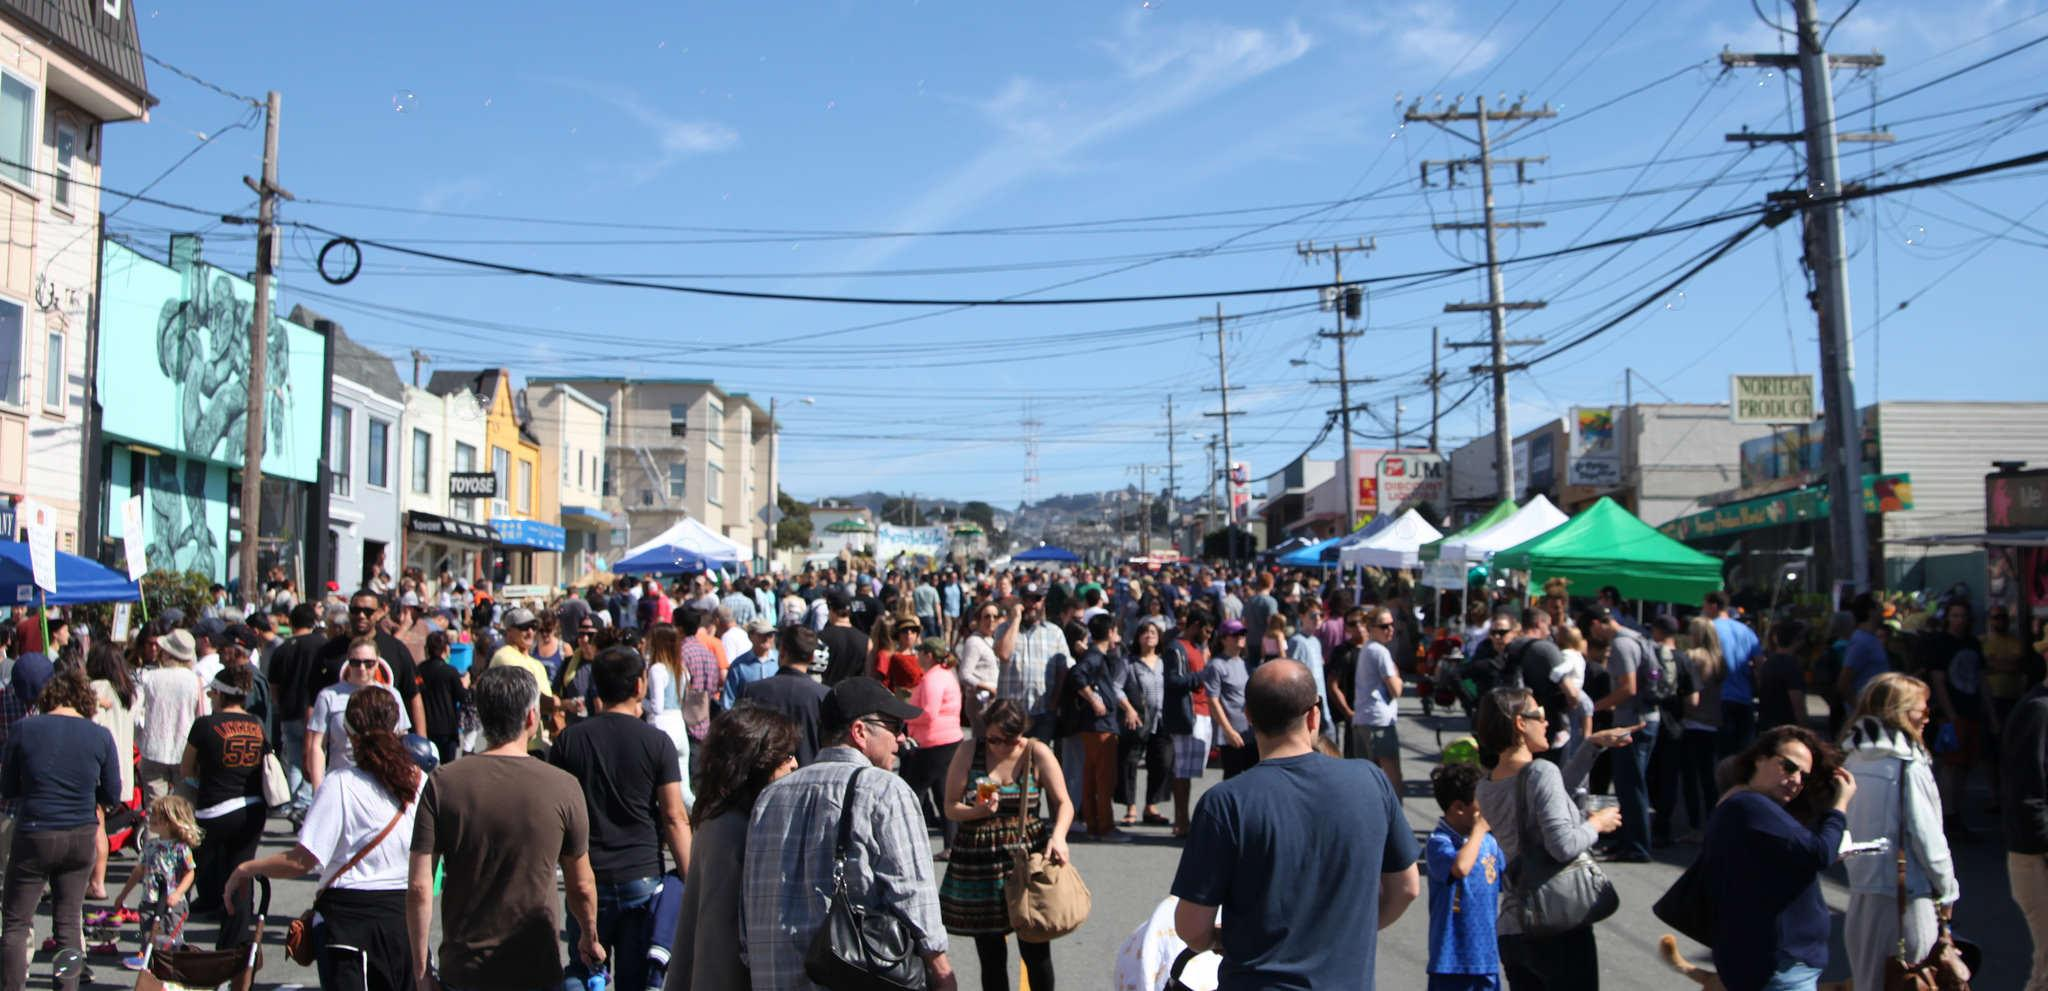 People, artists and vendors gather together on Noriega St. for the first annual Ocean Beach Music and Arts Festival Saturday, Oct. 11, 2014.